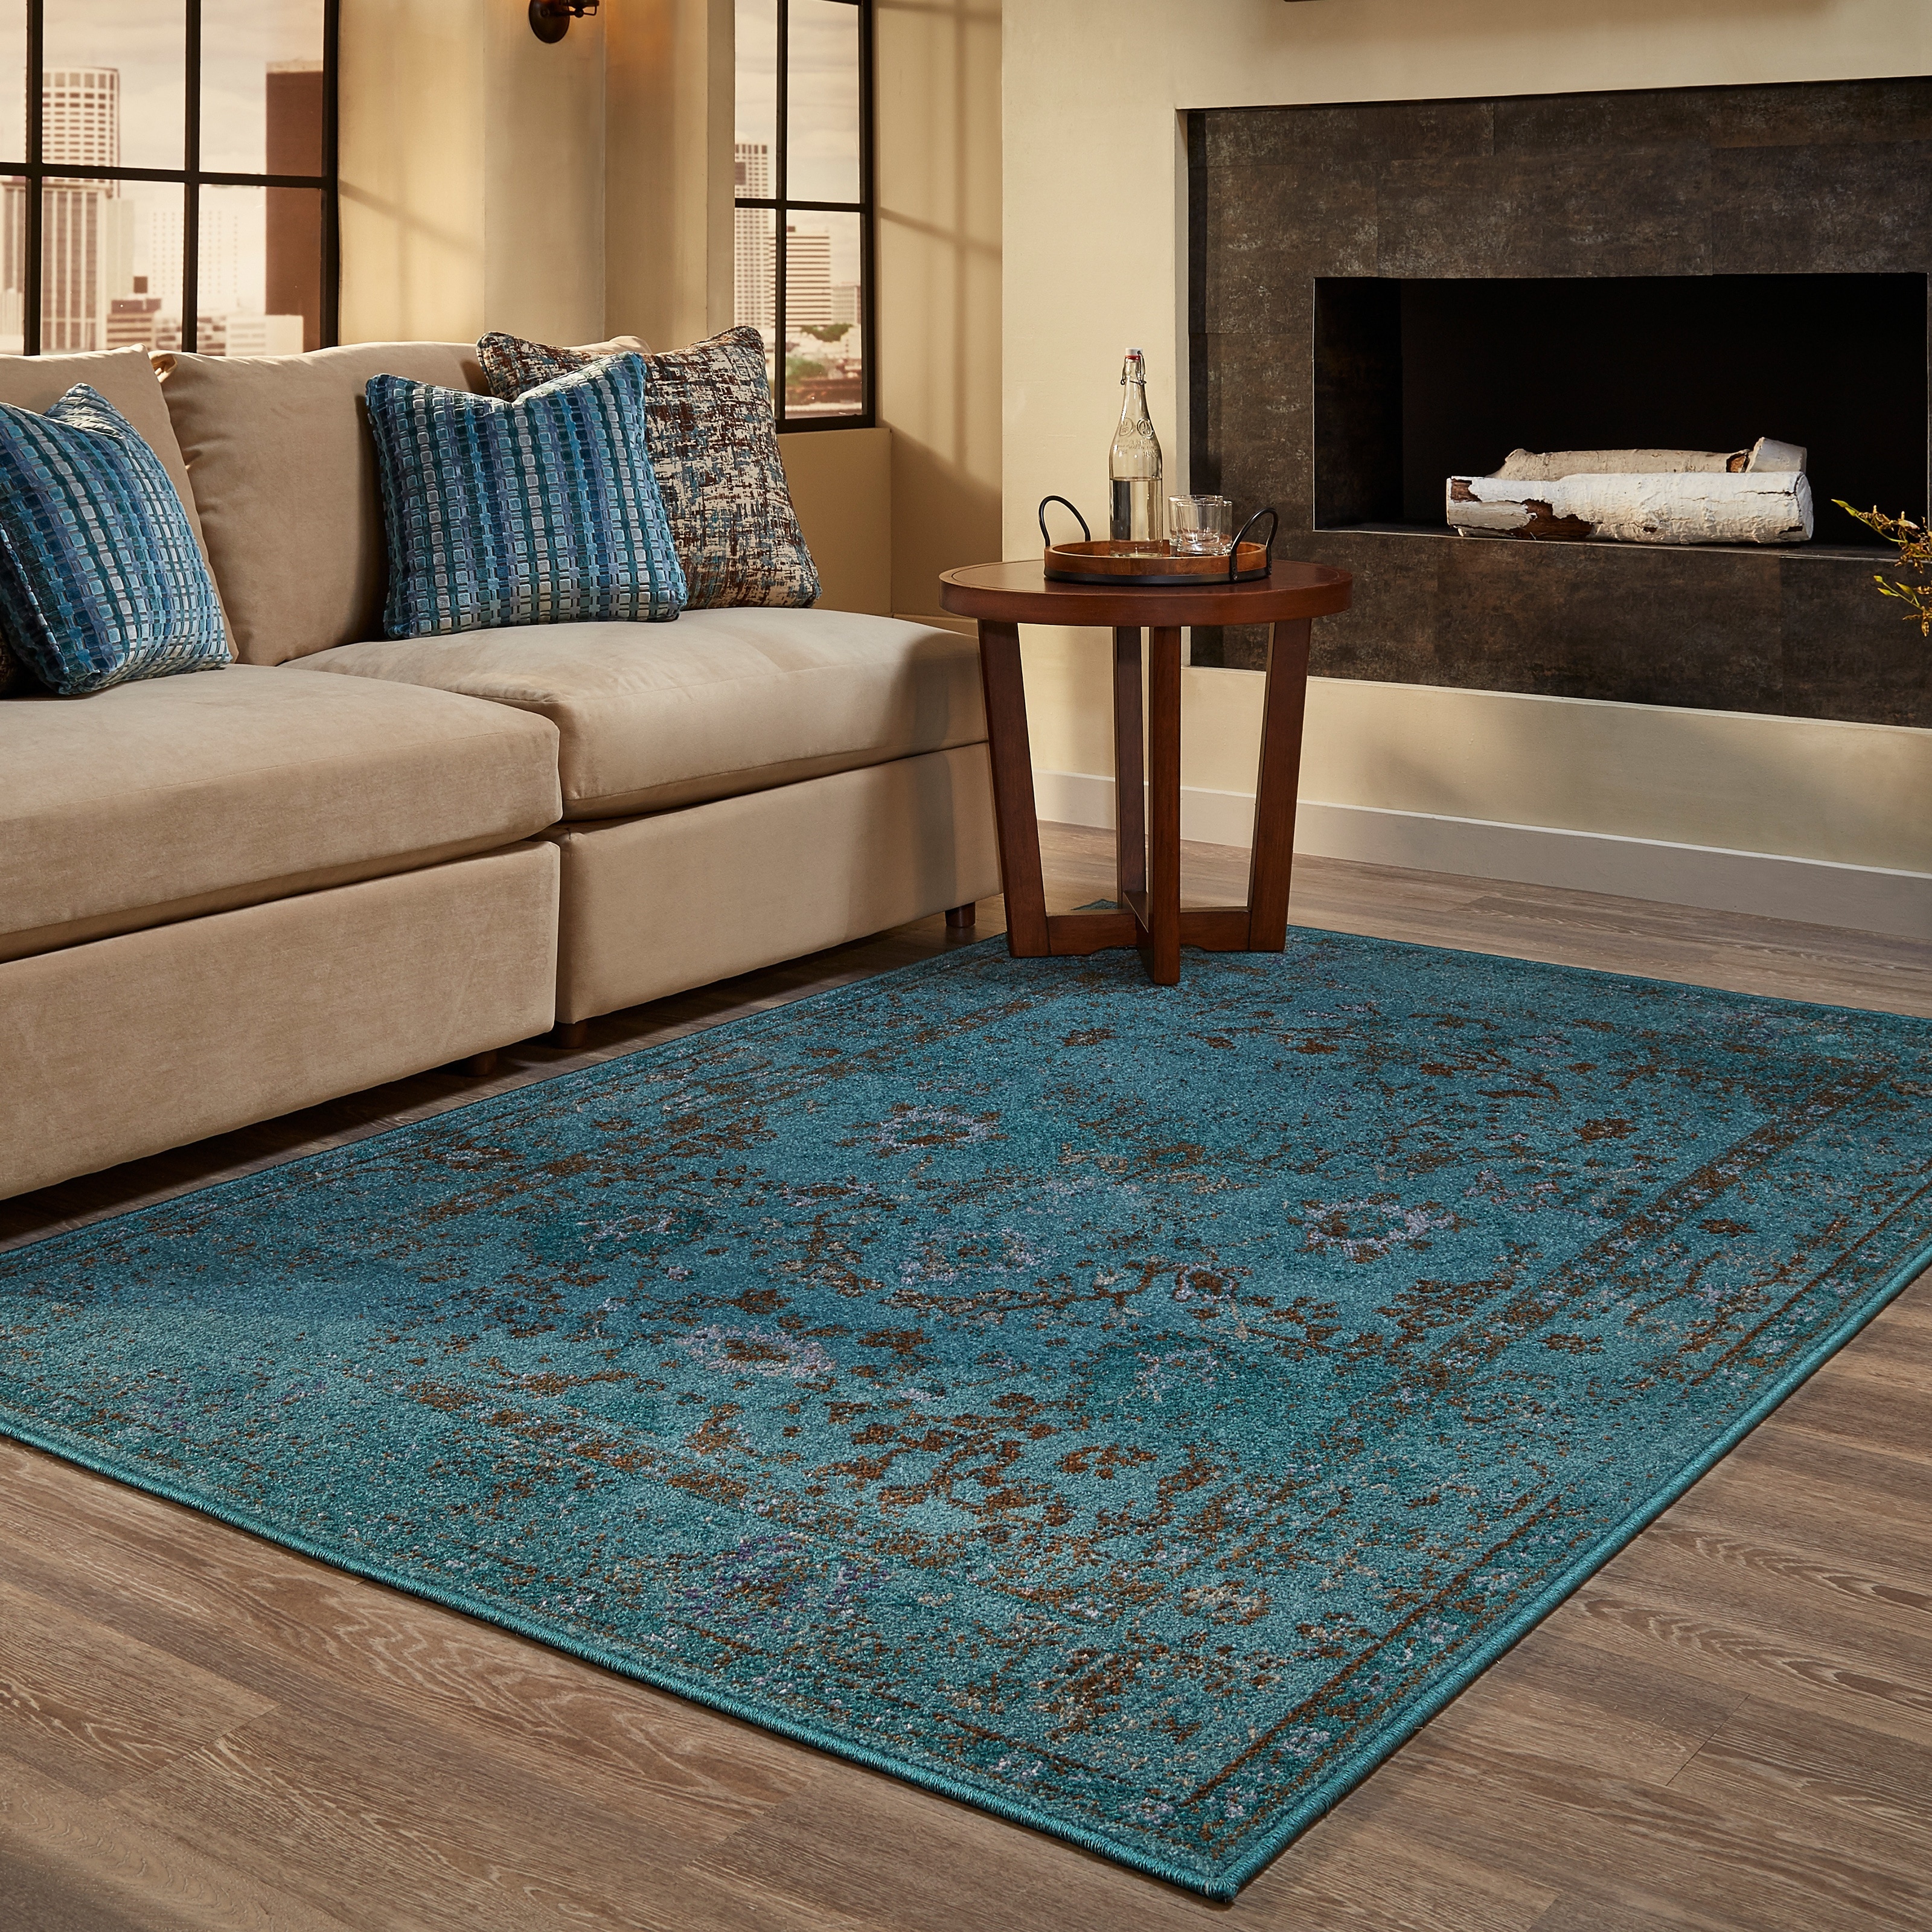 Shop Over-dyed Distressed Traditional Teal/ Grey Area Rug